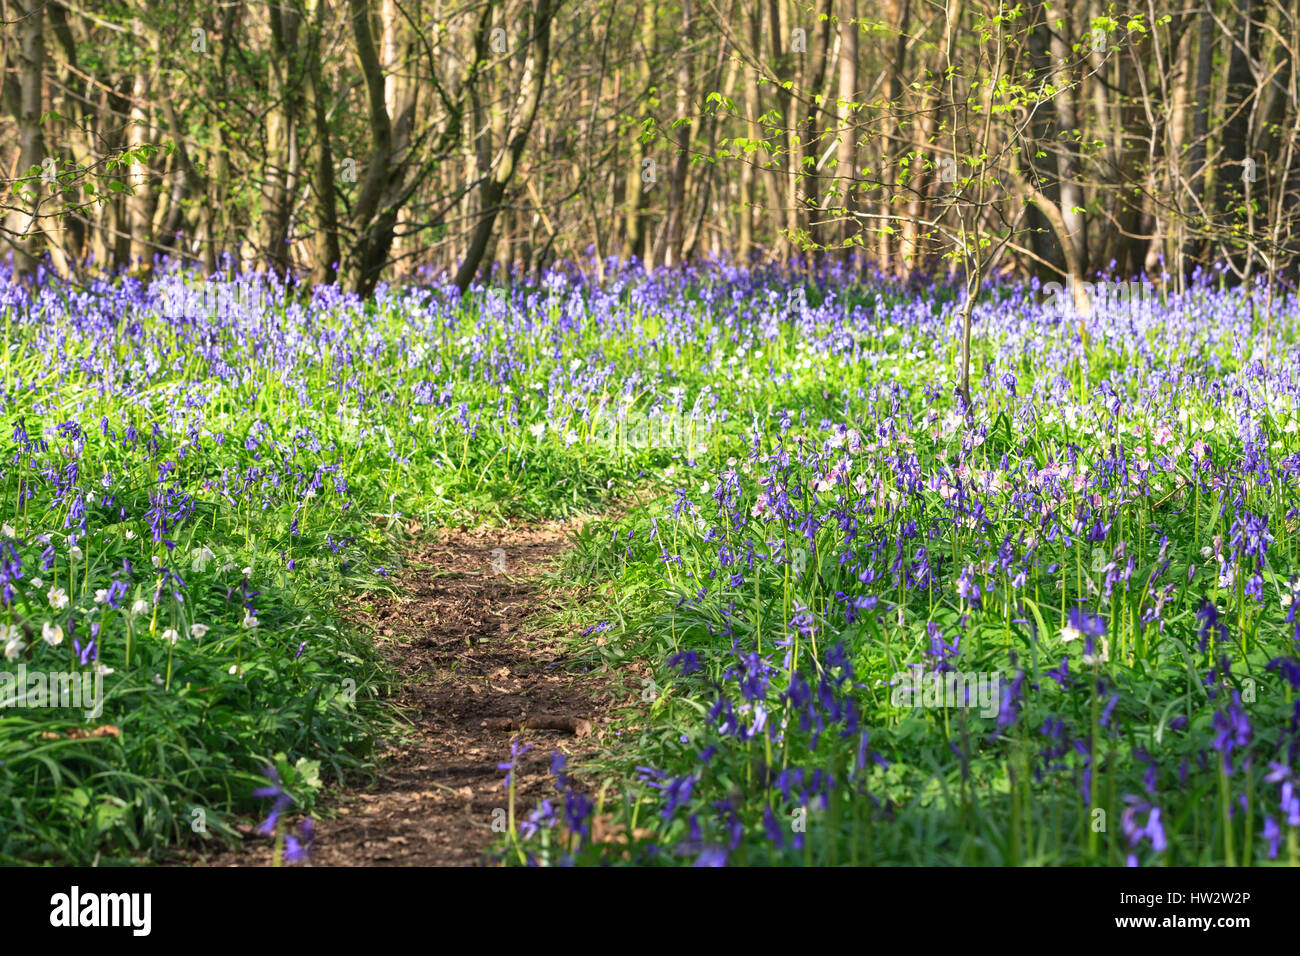 Carpet of English Bluebells Hyacinthoides non-scripta (Endymion non-scriptus) with path in the Ham Street Woods National Nature Reserve, Hamstreet, uk Stock Photo